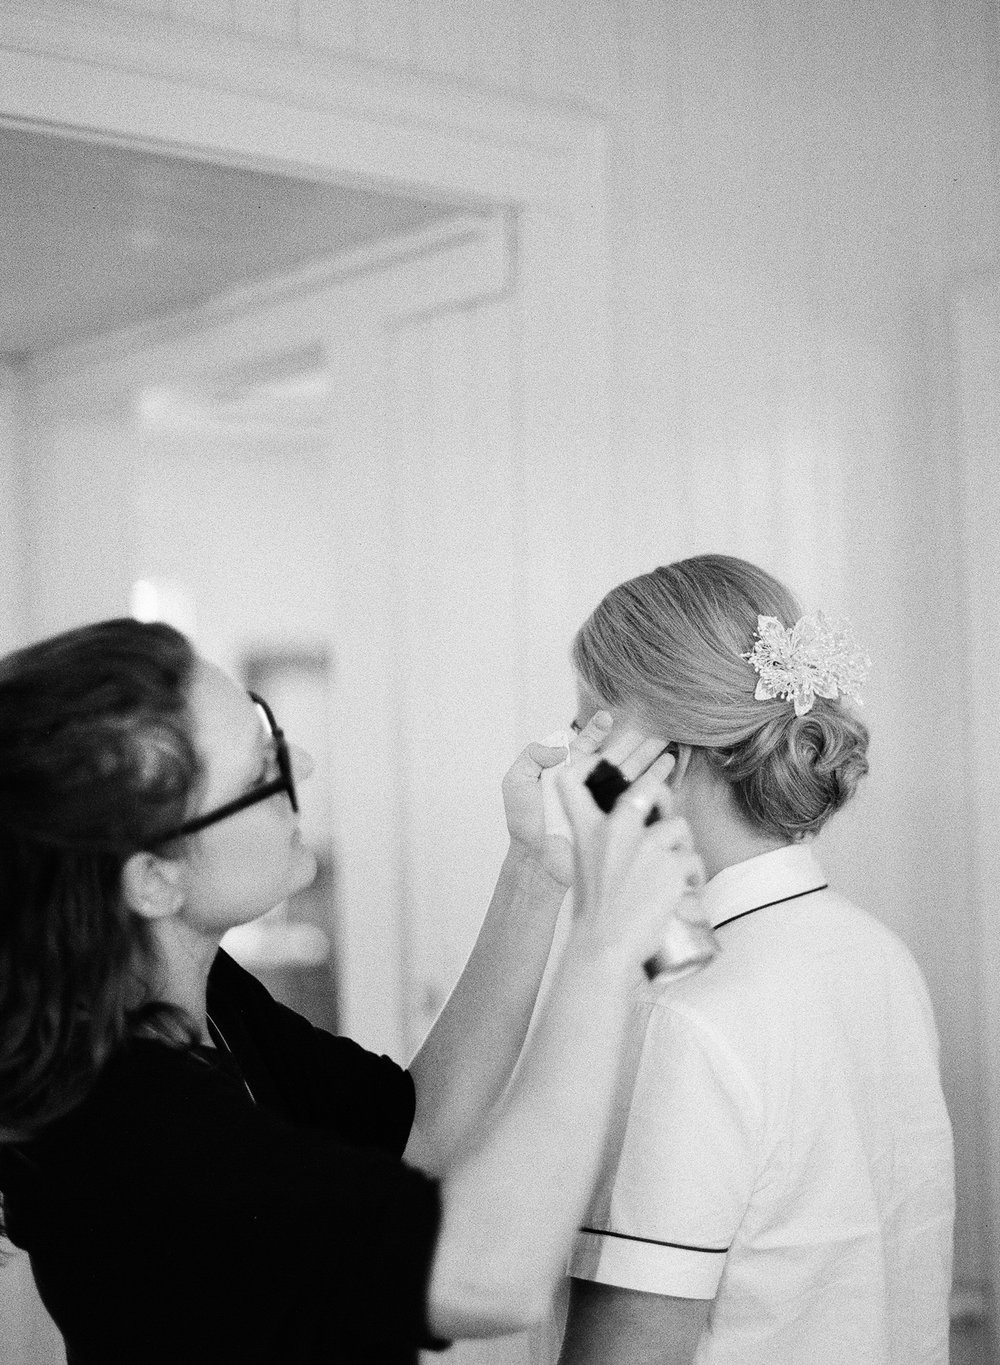 Bald Head Island Wedding Film Photographer 03.jpg